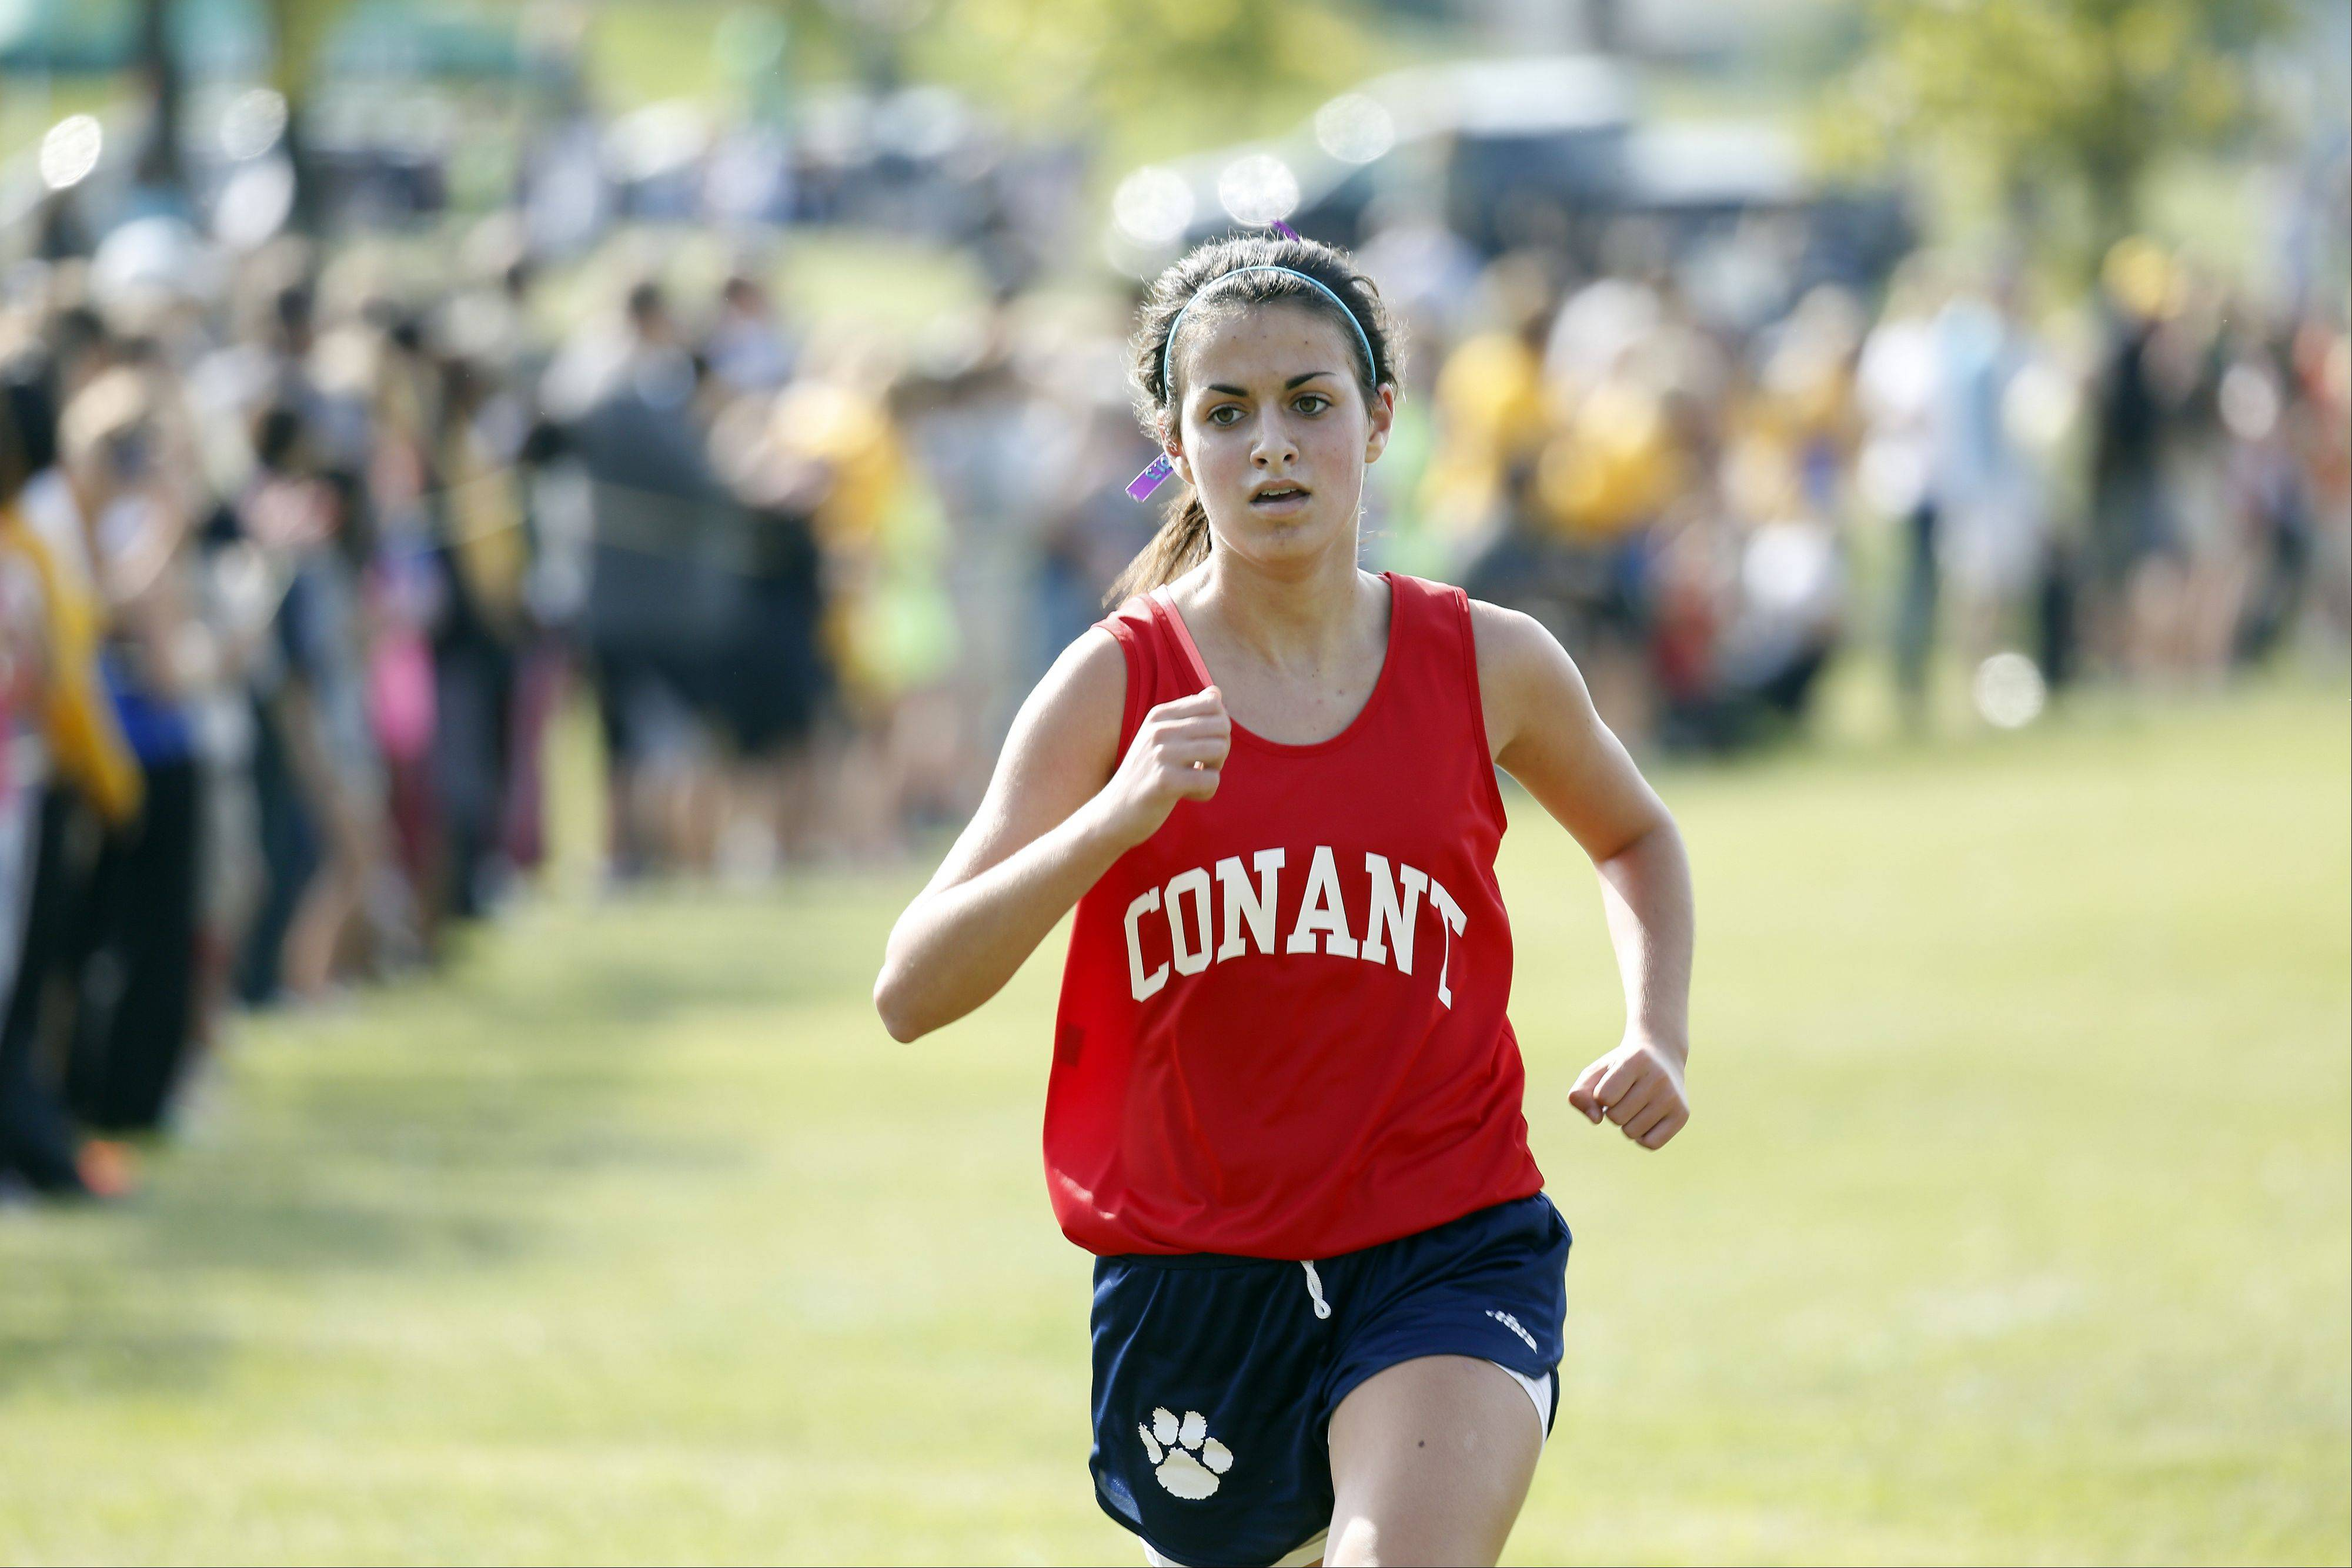 Conant's Zoe Shoro during the Flyin' Hawk Cross Country meet Saturday at Sunrise Park in Bartlett.